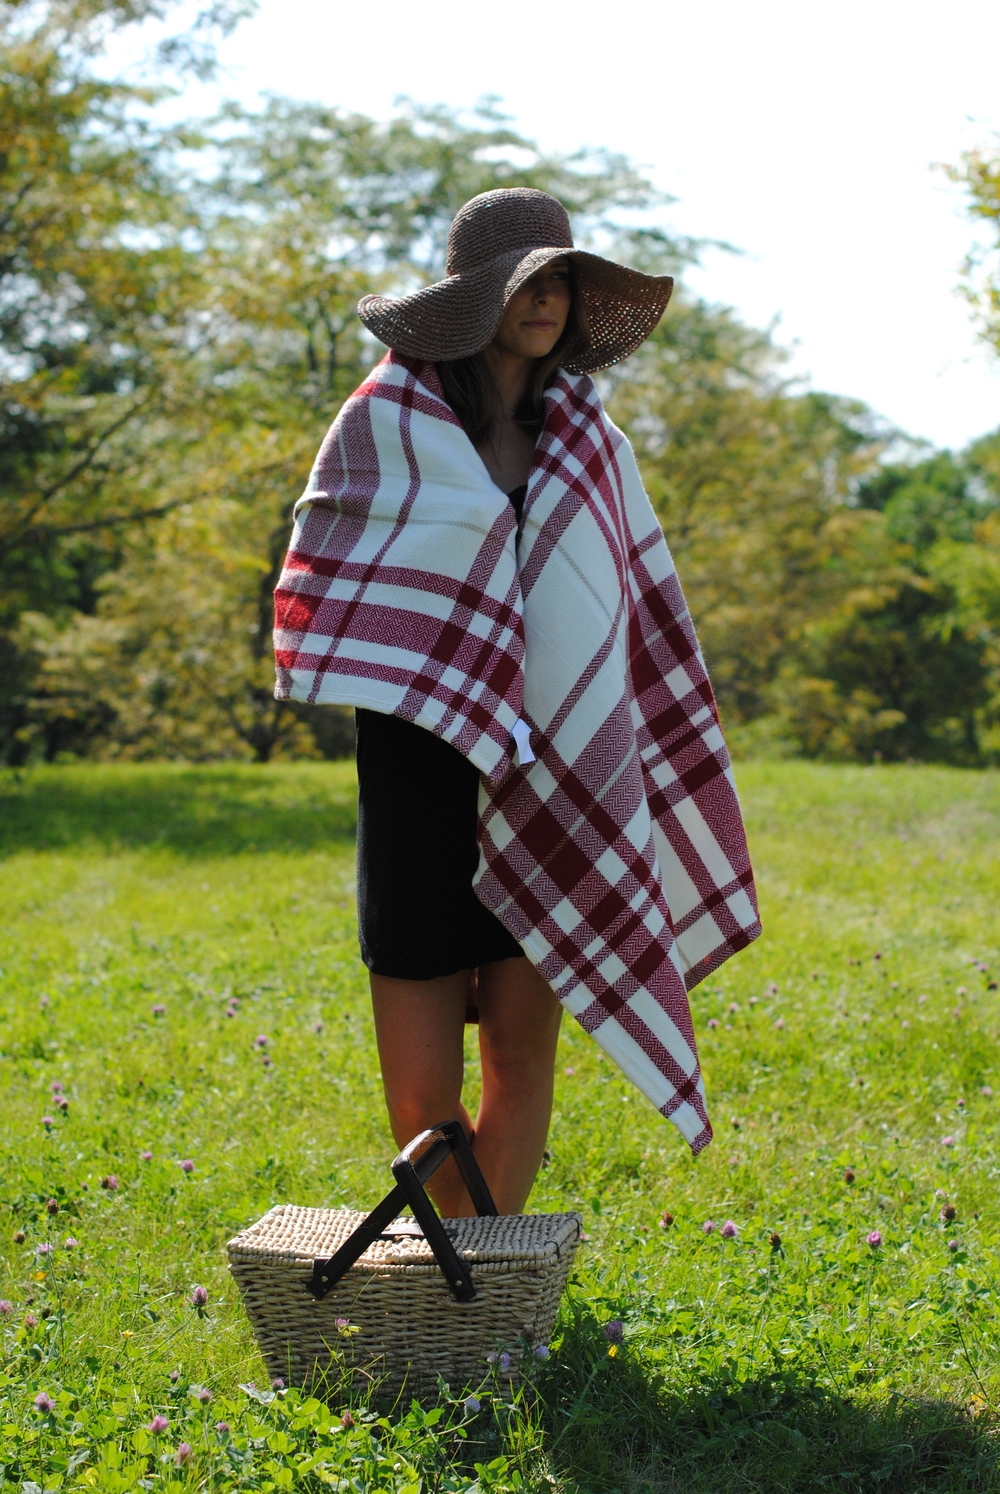 Affordable Burberry blanket cape alternative? One can dream...